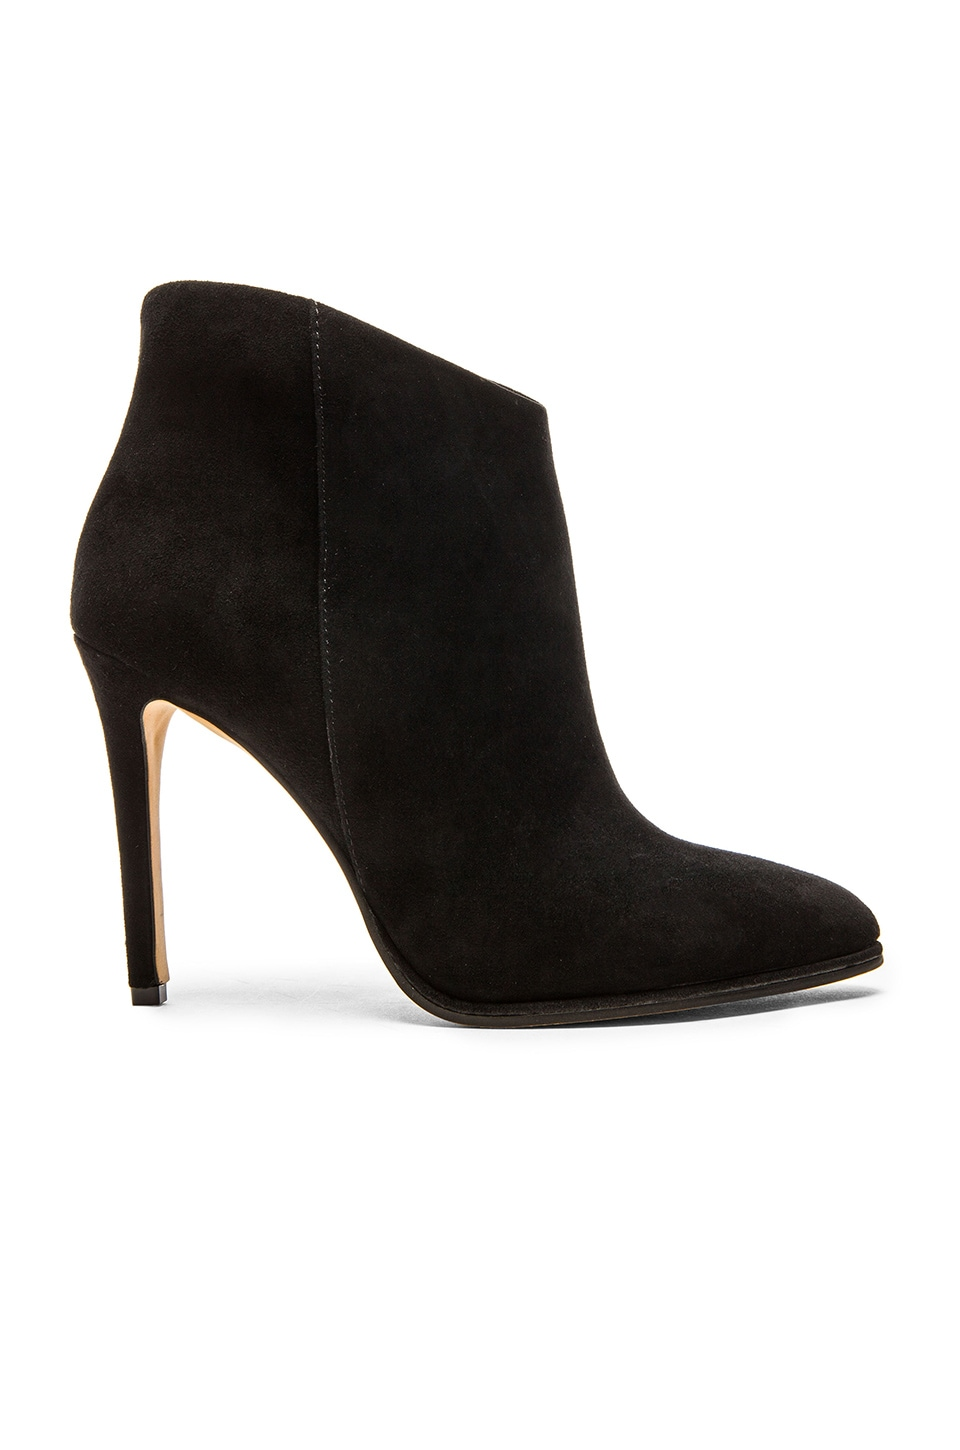 Vince Camuto Lorenza Bootie in Black